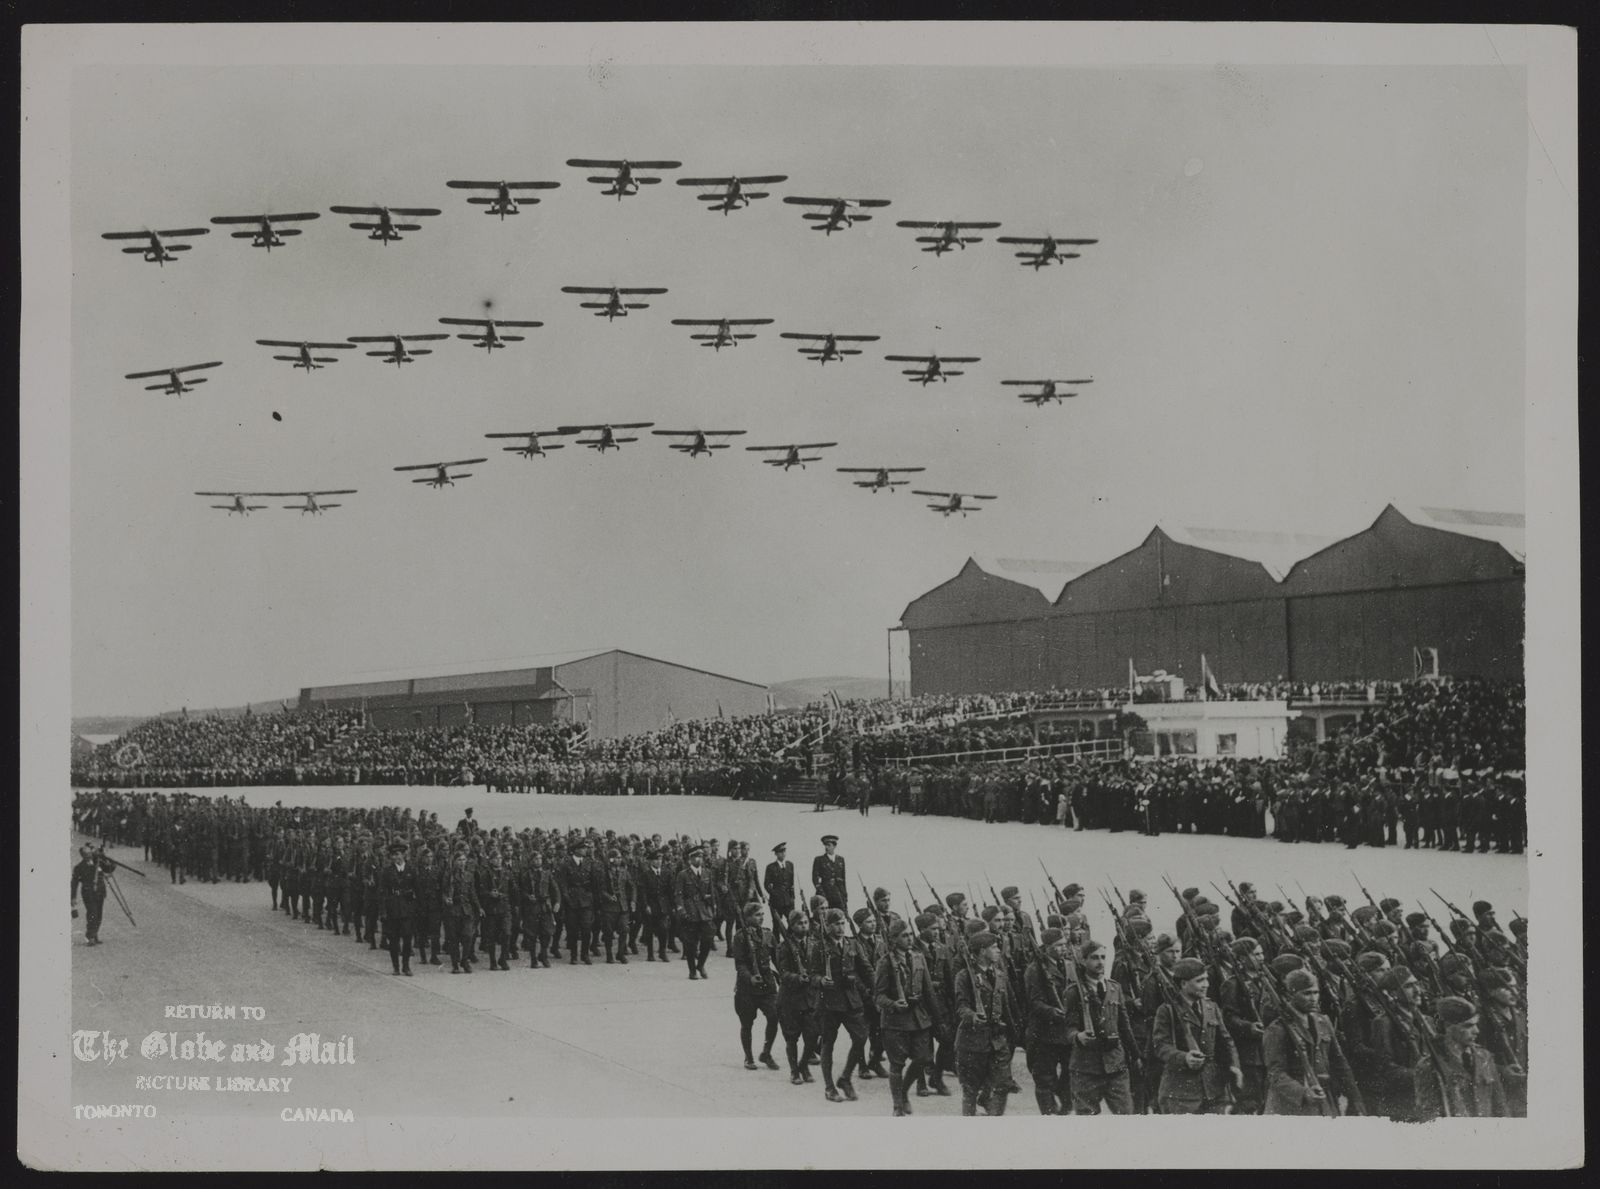 ITALY Air Force MUSSOLINI ATTENDS ITALIAN AIR FORCE ANNIVERSARY CELEBRATIONS. 30.3.36 Mussolini, with General Goamboas, the Hungarian Premier, attended the celebrations on the 13th anniversary of the foundation of the Italian Air Force, at the Littorio Airport, Rome recently. O.P.S. A squadron of bombing planes fly over head in salute as troops on the ground march past Mussollini and General Goamboas, at Littorio Airport. 39/P Keystone